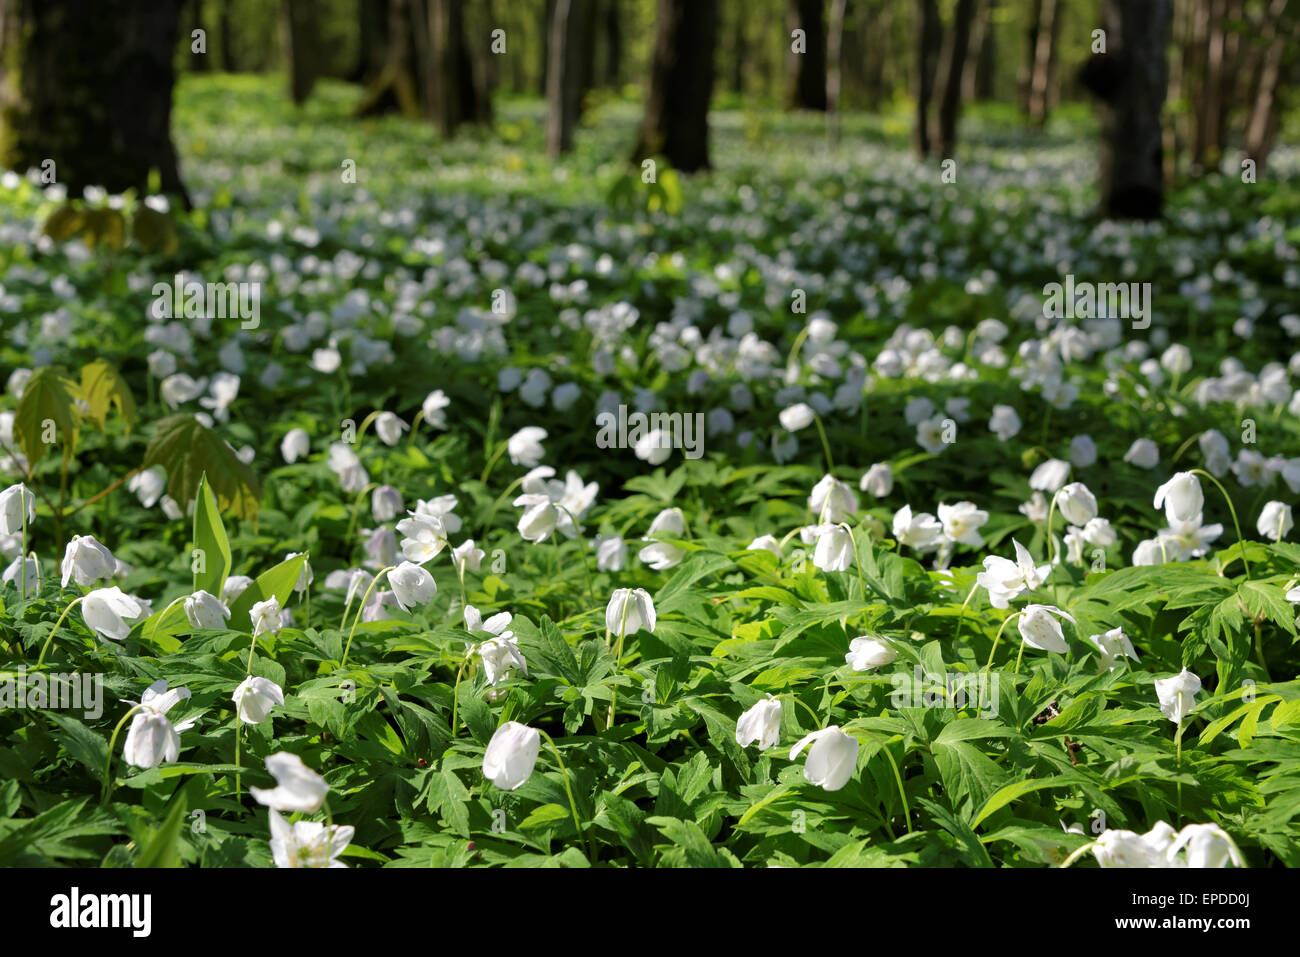 Anemone Nemorosa Is An Early Spring Flowering Plant In The Genus